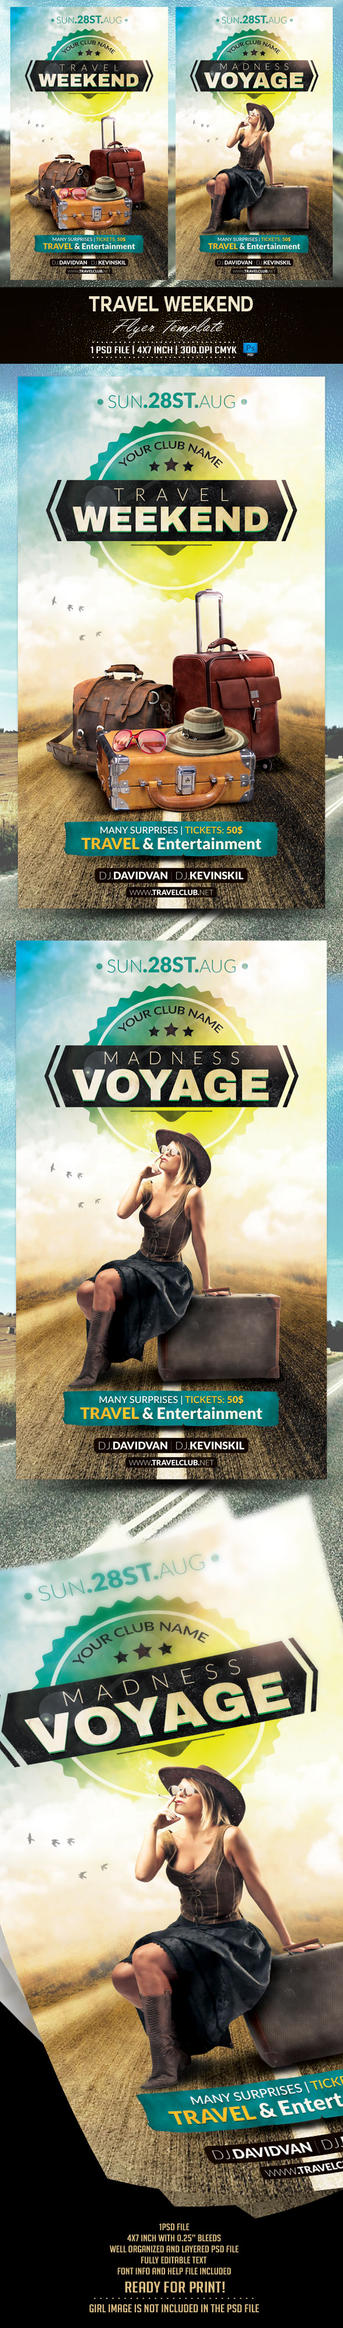 Travel Flyer Template by BriellDesign